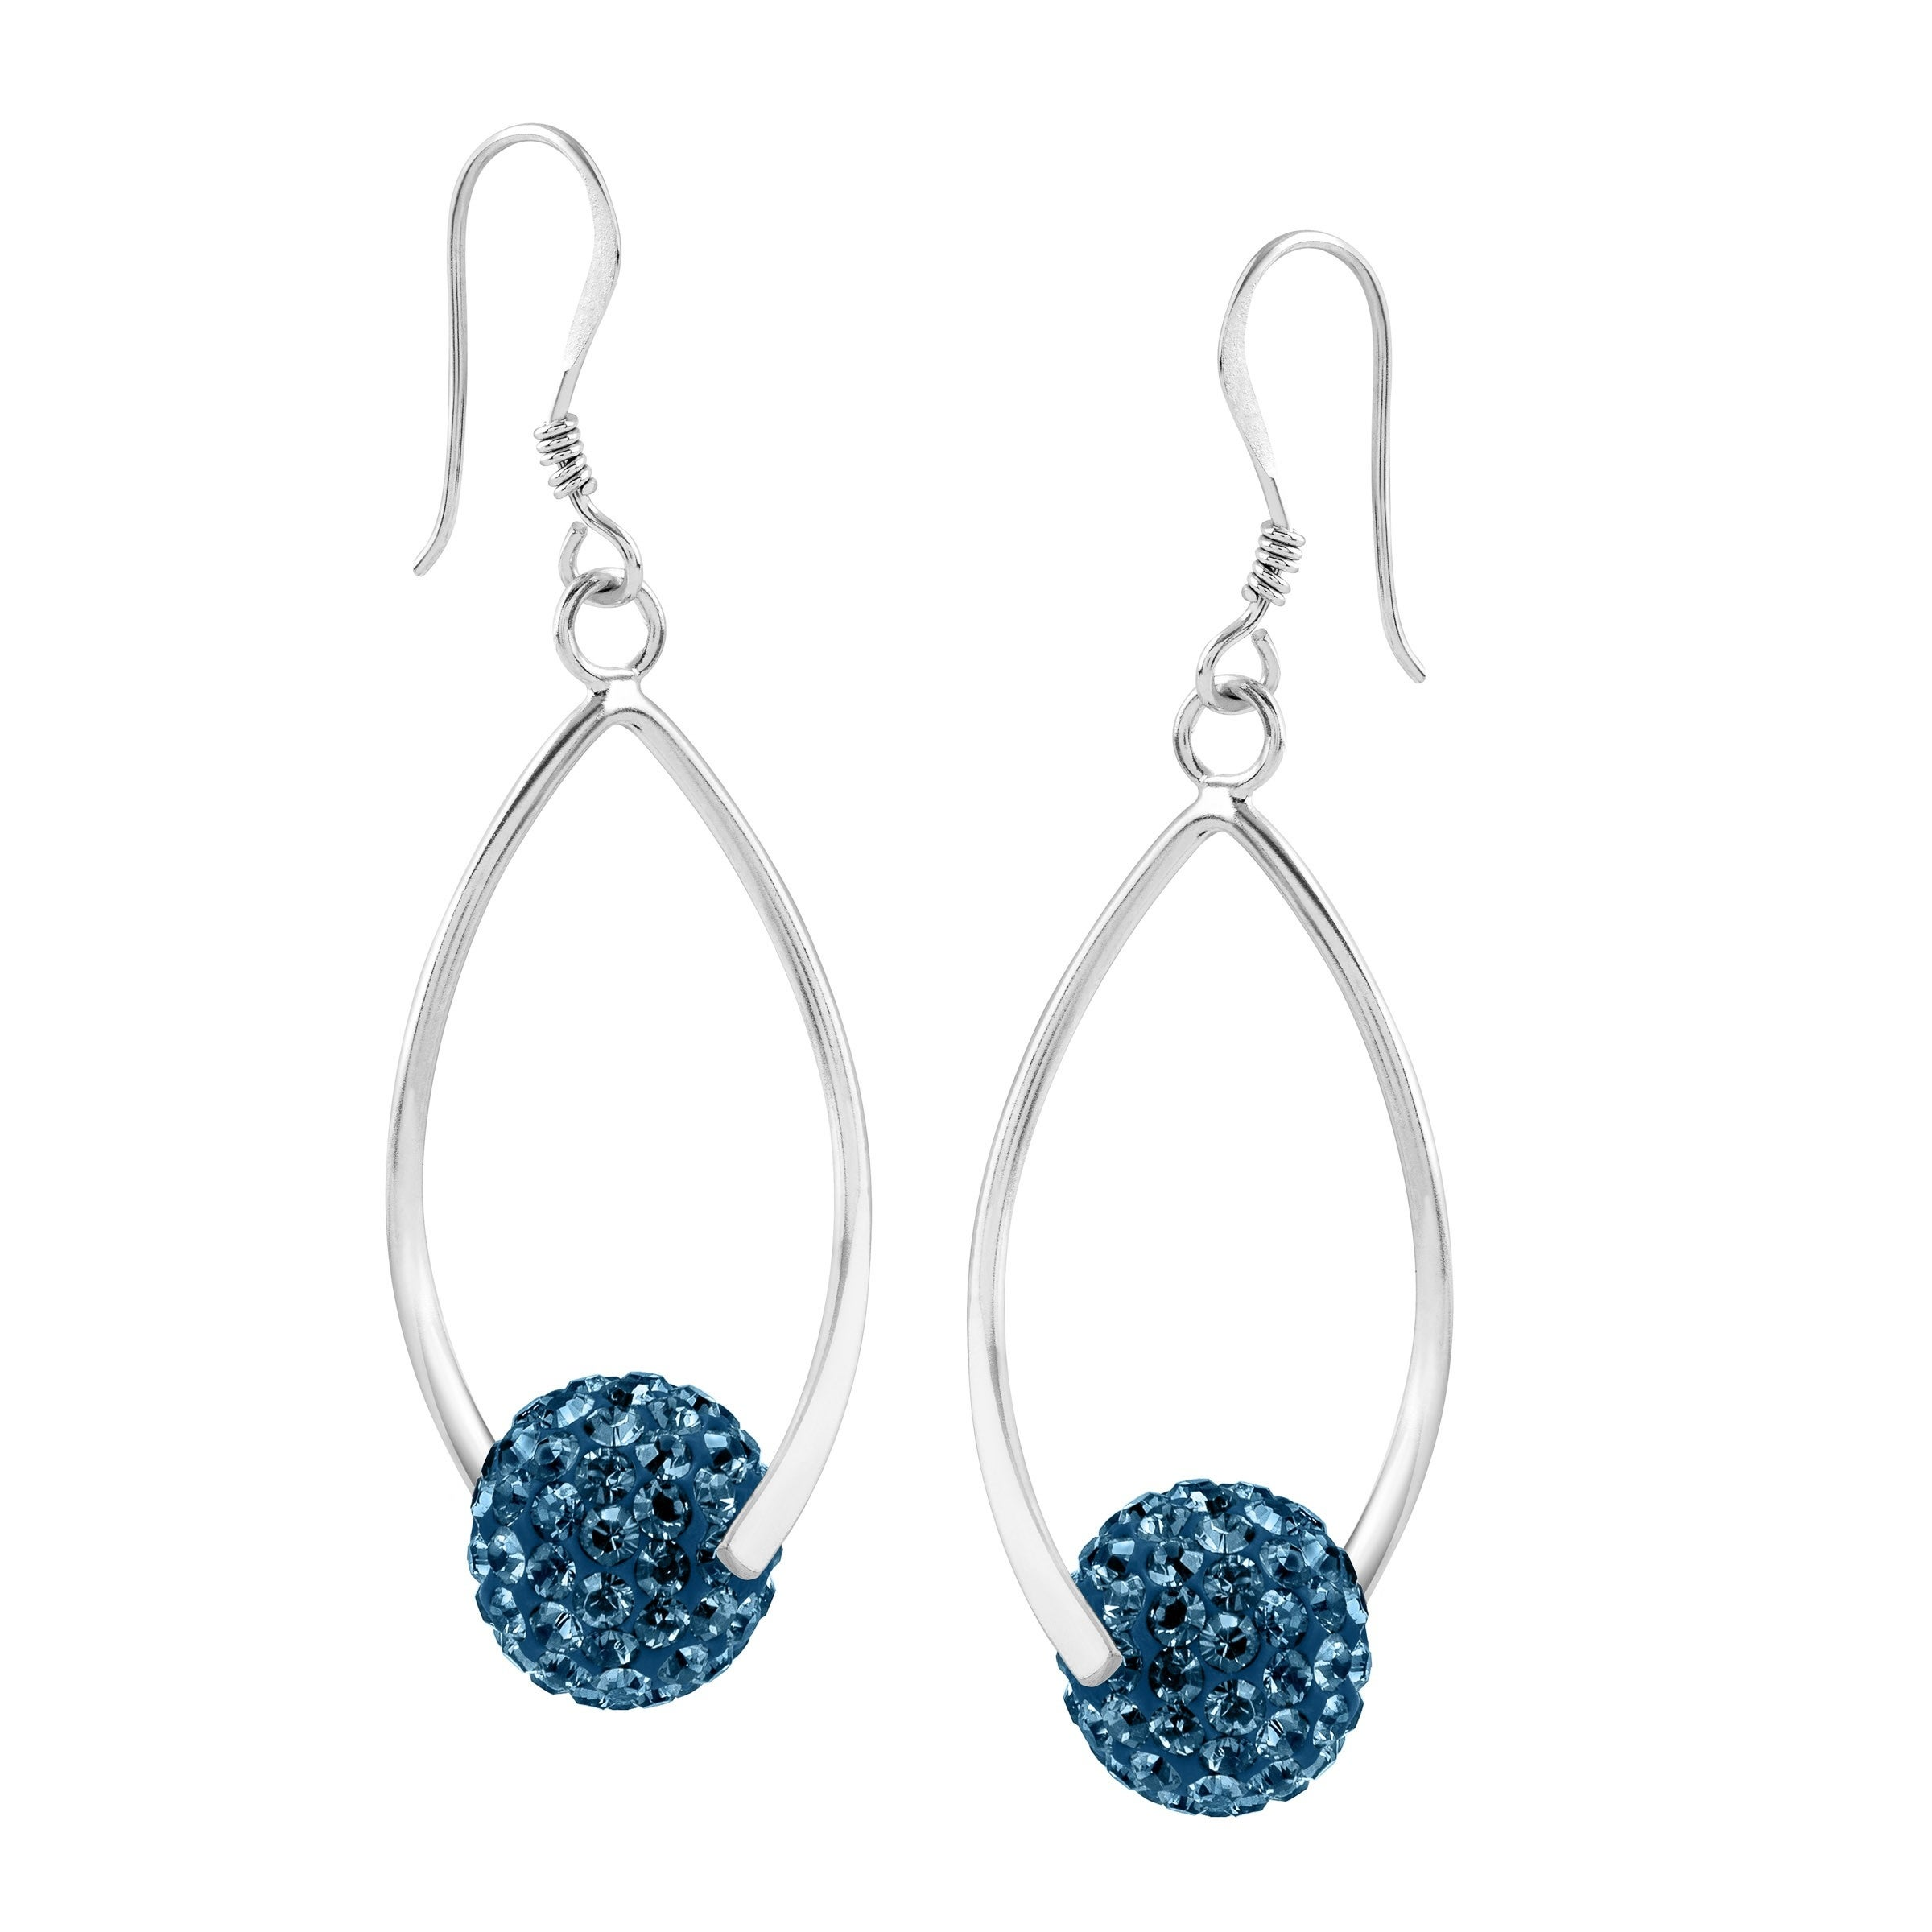 55debf22c Crystaluxe Twisted Ball Drop Earrings with Swarovski Crystals in Sterling  Silver